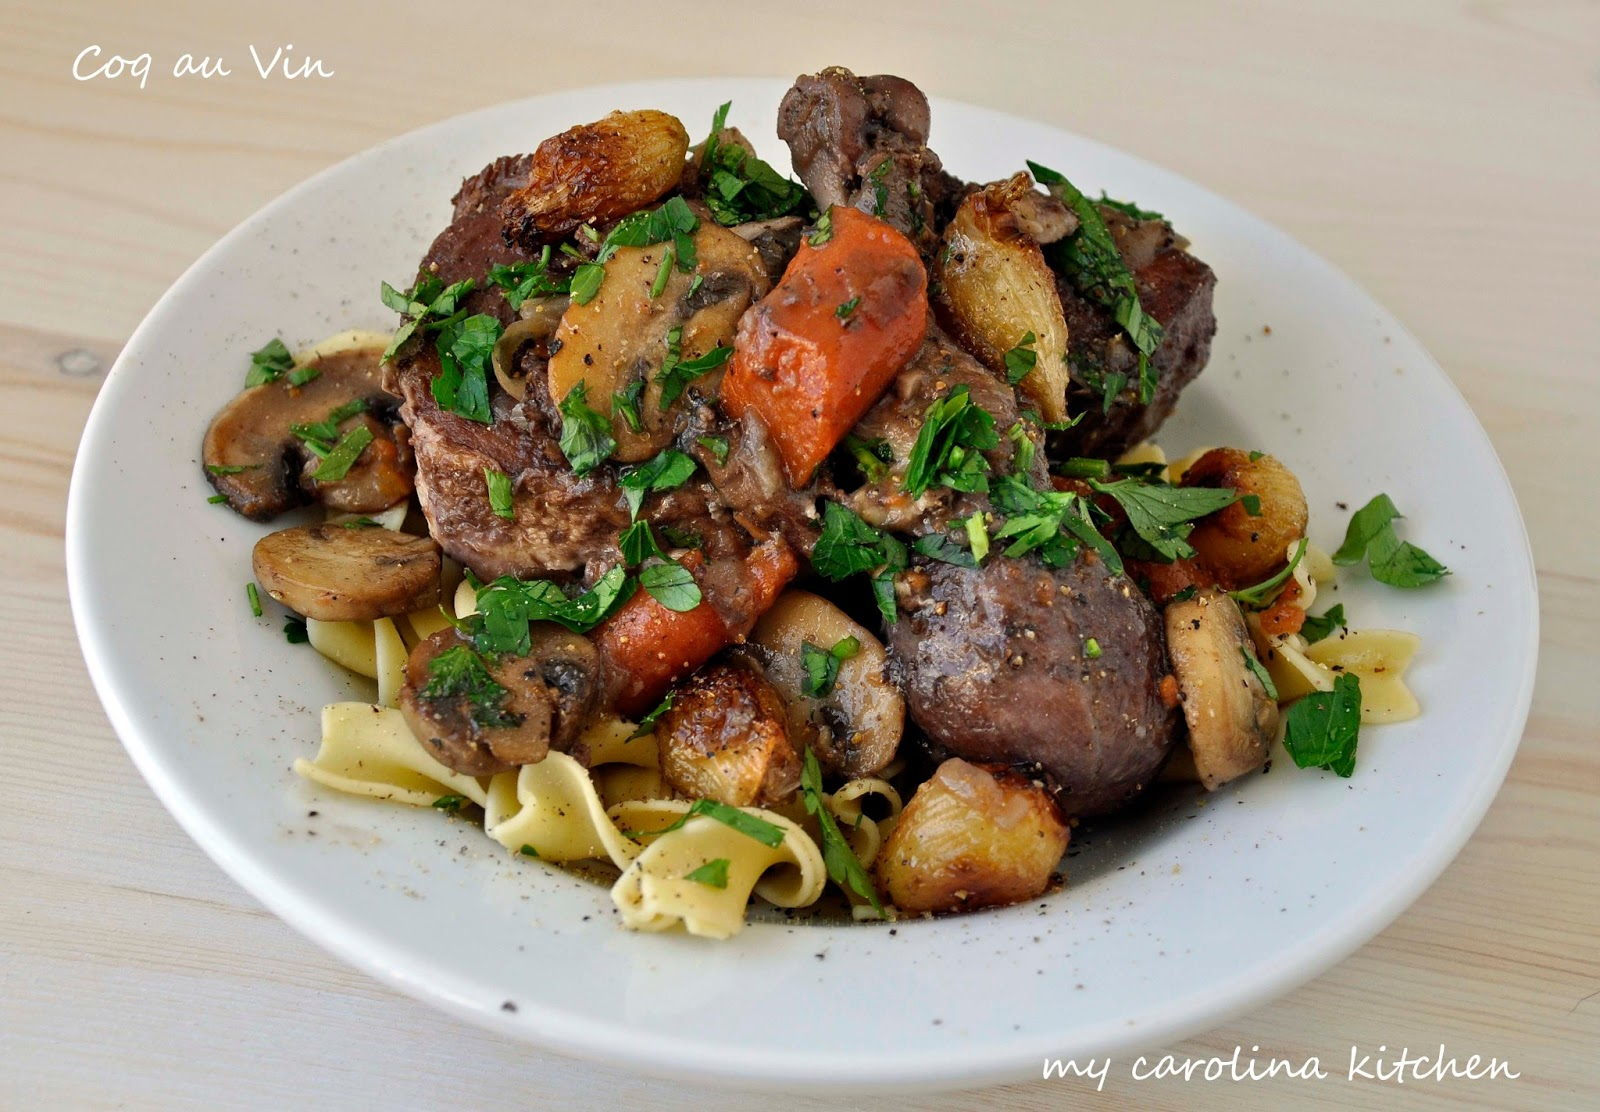 my carolina kitchen ina s coq au vin it s just beef bourguignon with chicken. Black Bedroom Furniture Sets. Home Design Ideas